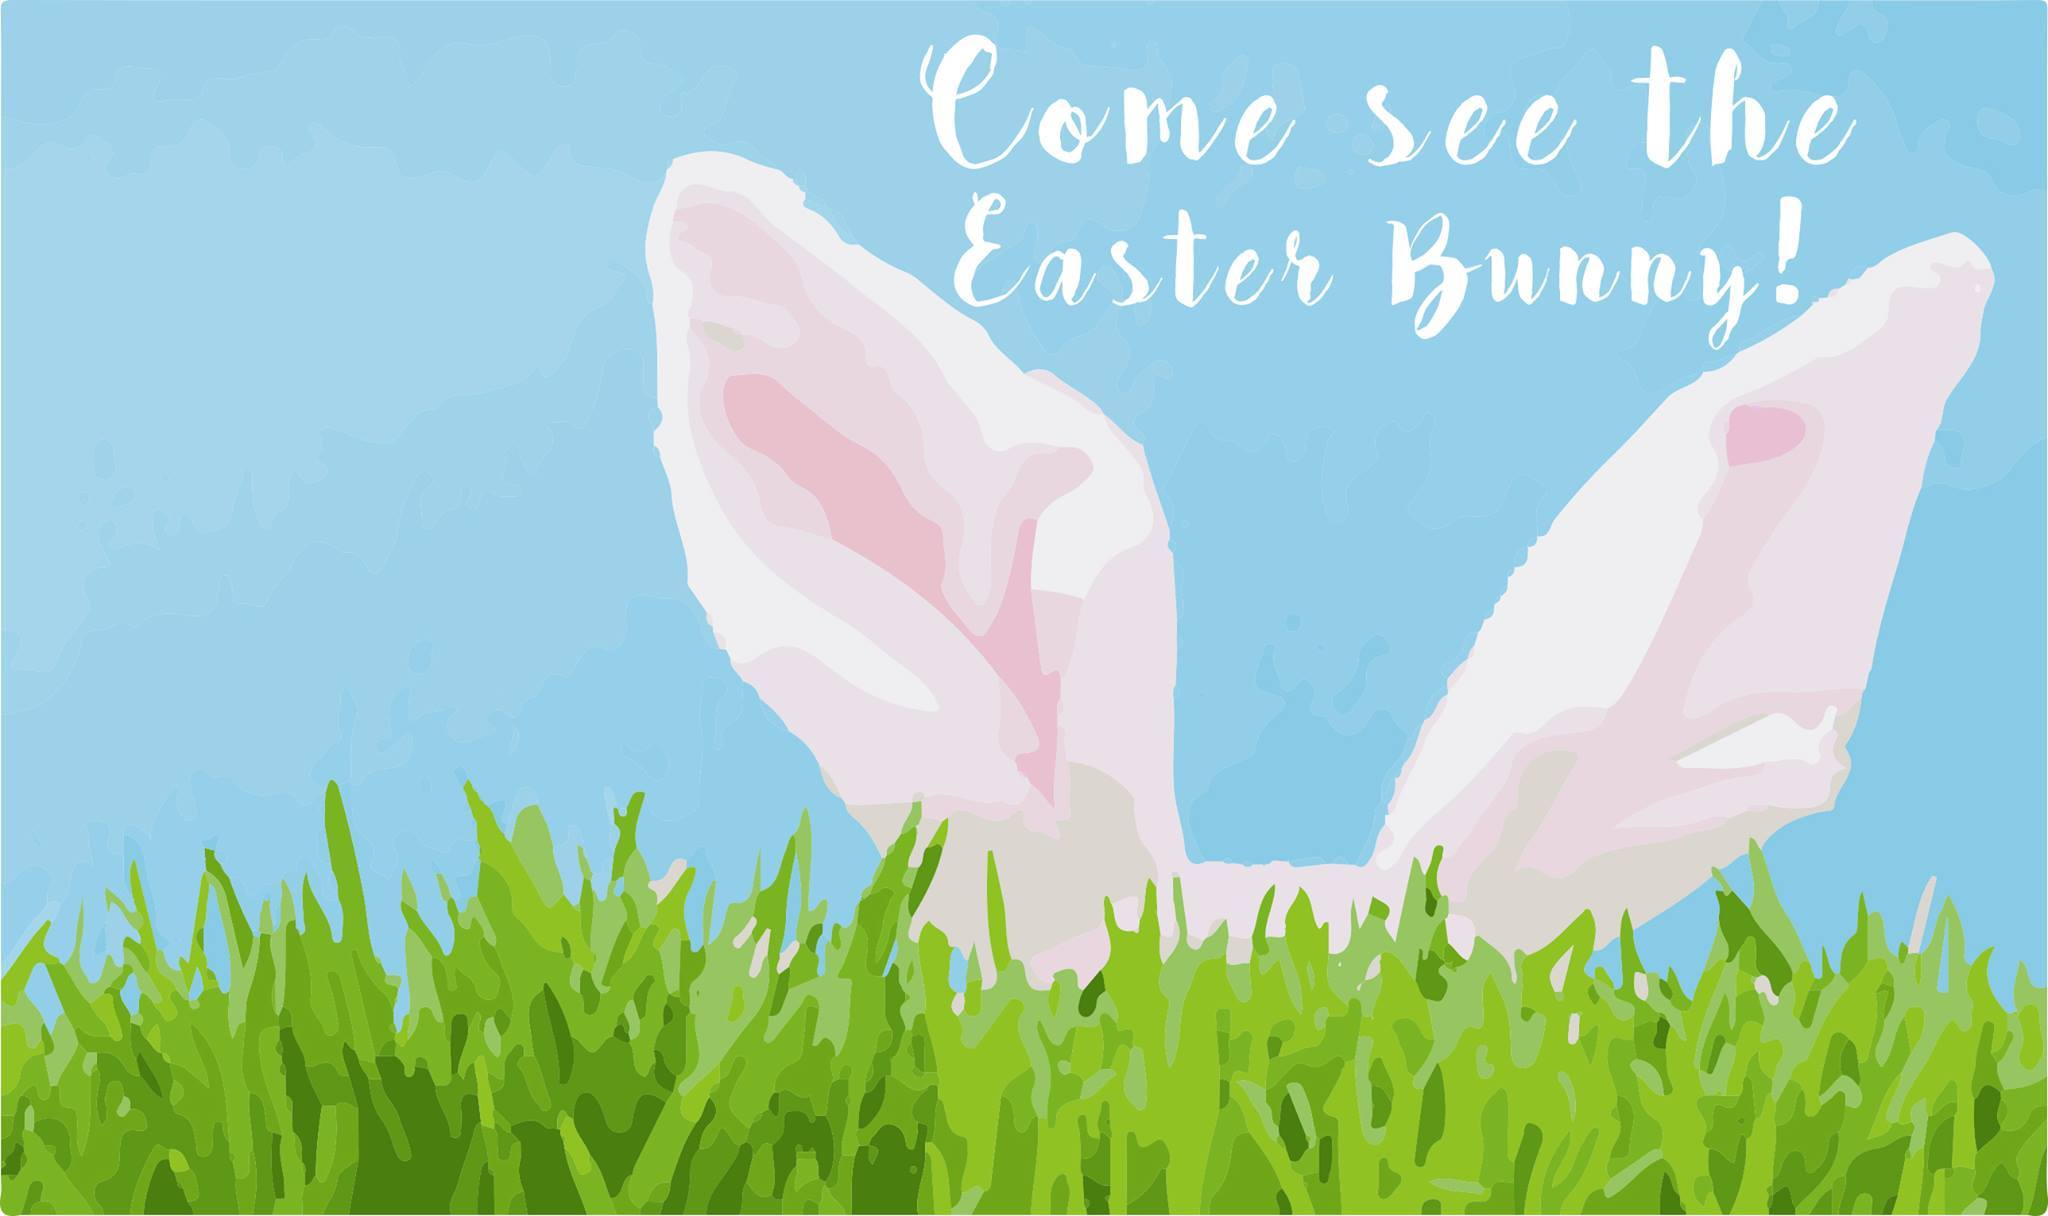 Come see the Easter Bunny!